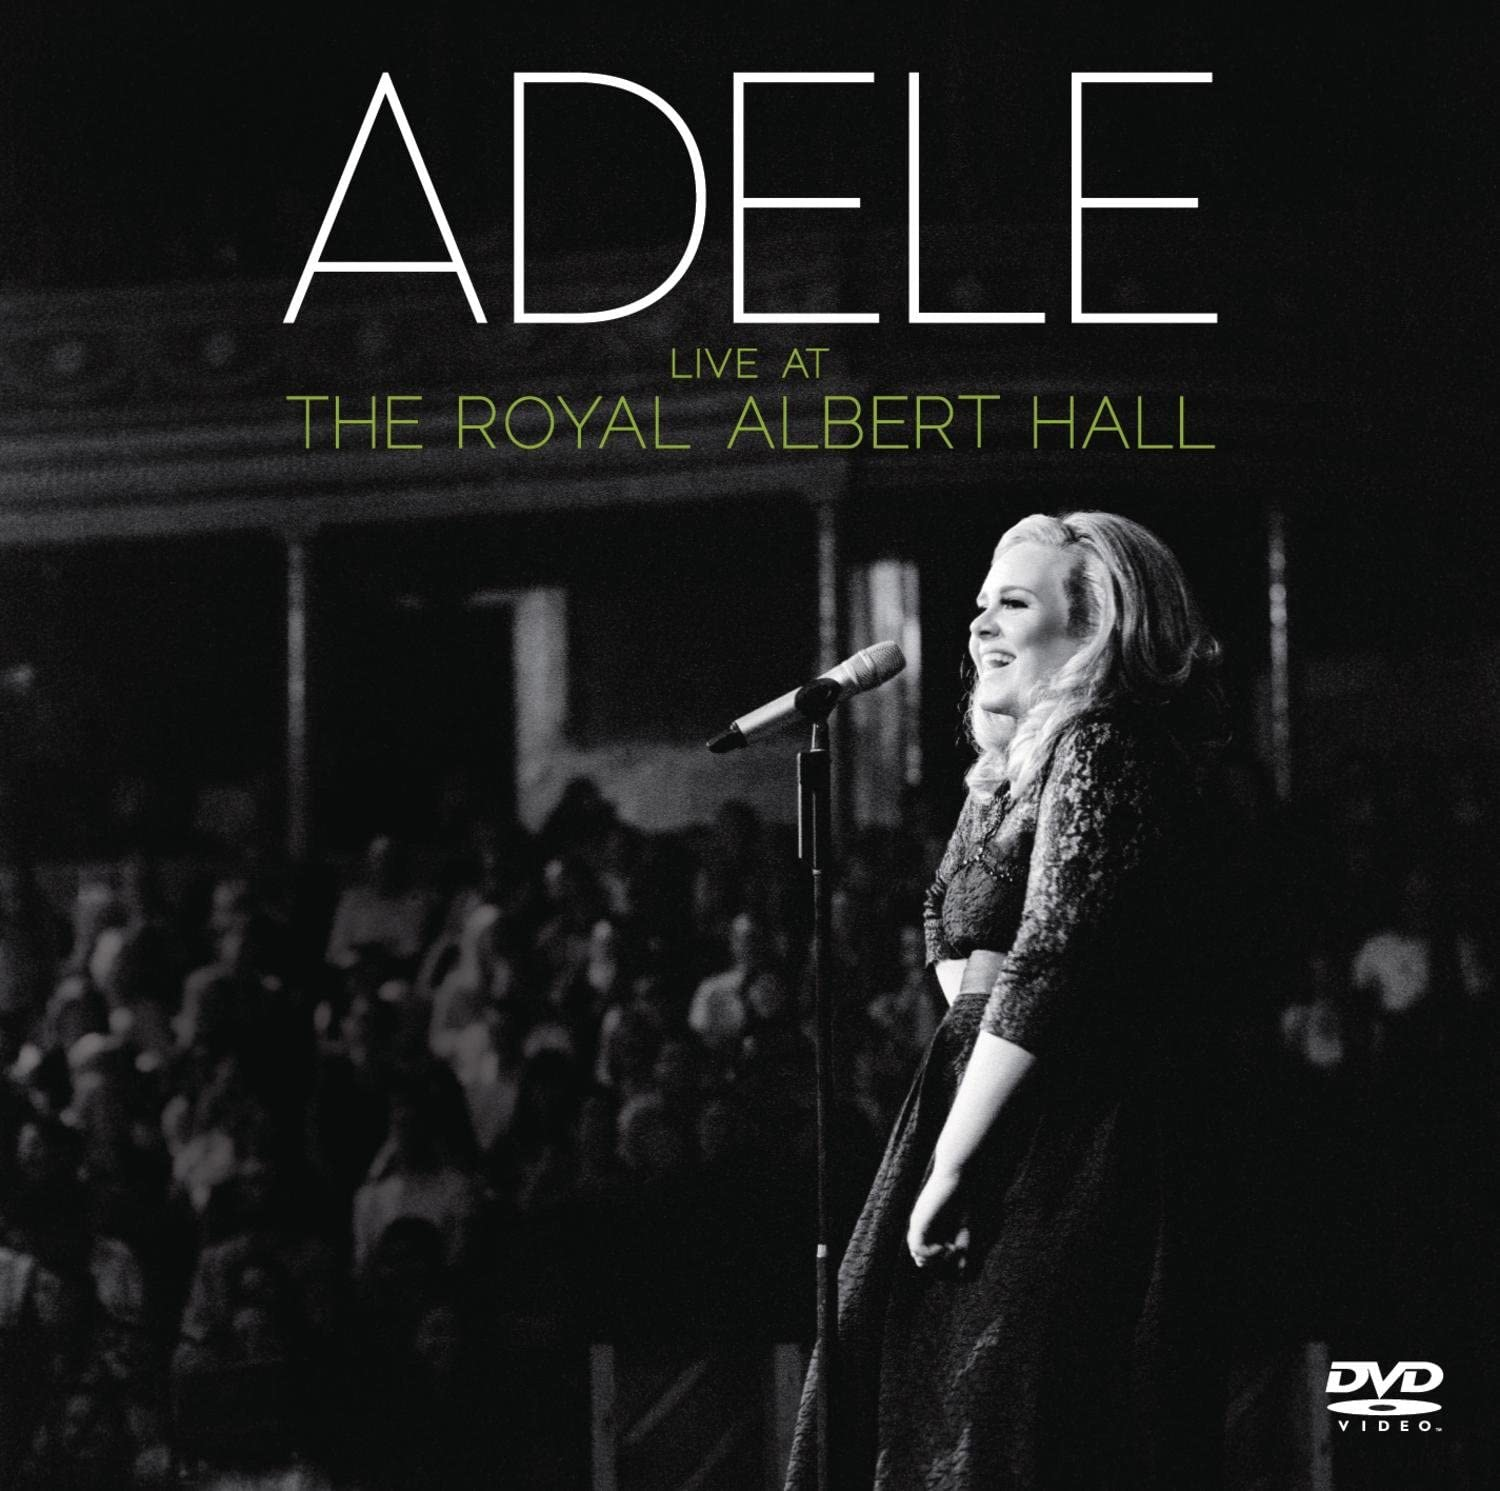 Live At The Royal Albert Hall 2011 [DVD]